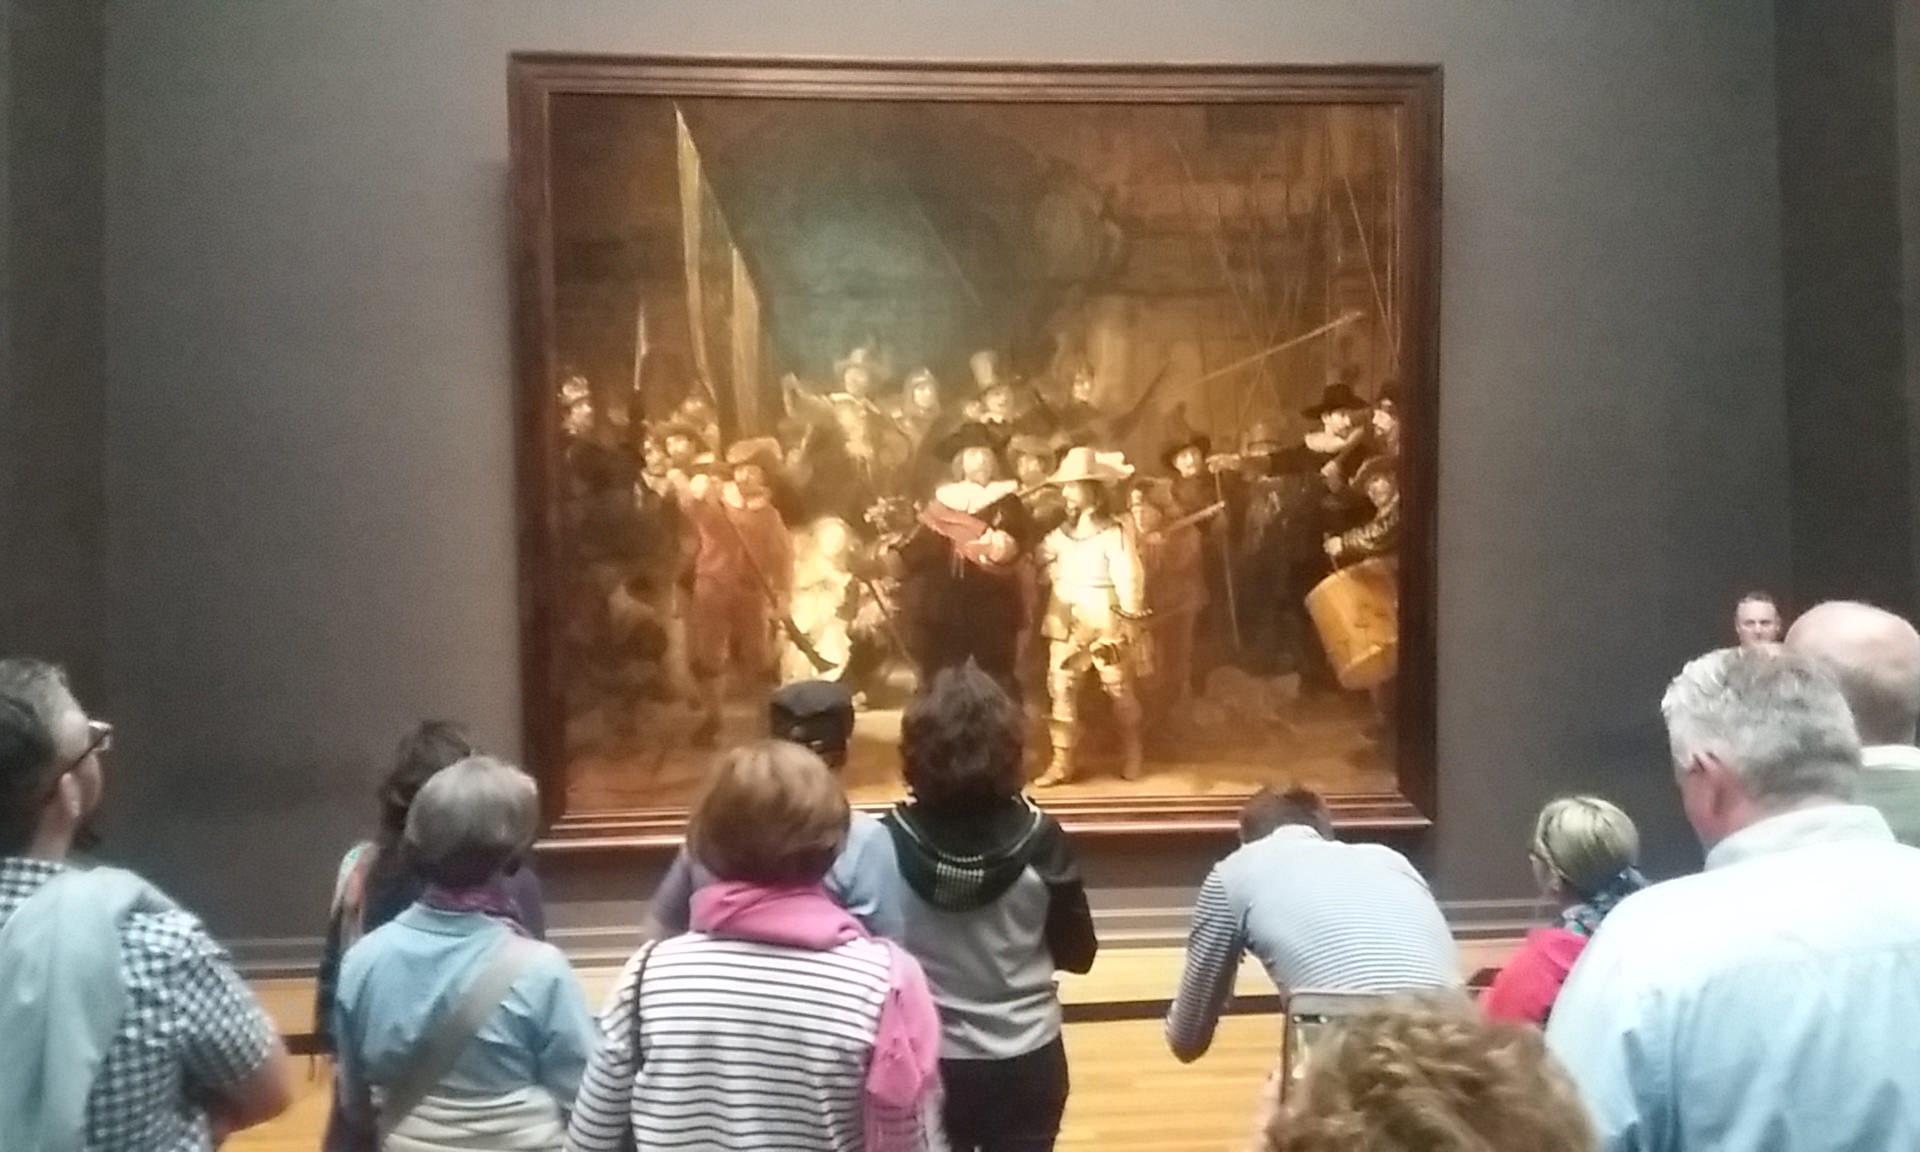 Visitors admire 'The Night Watch' in the Rijksmuseum